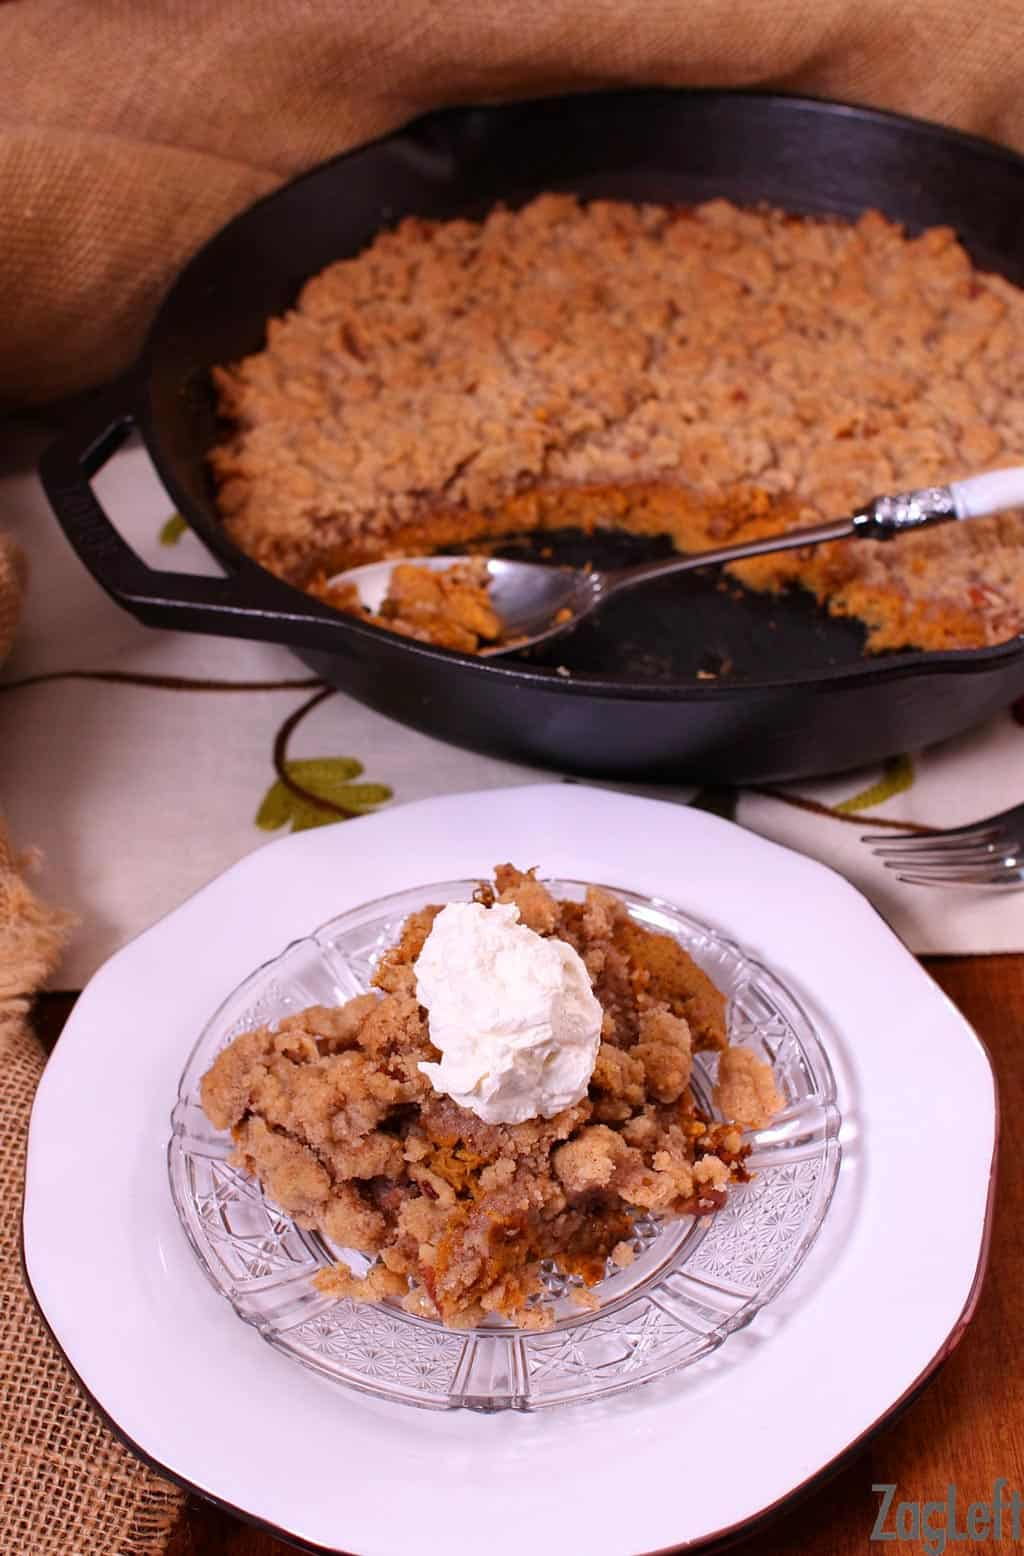 This Skillet Crustless Pumpkin Pie with streusel topping has all the wonderful flavors you would expect in a traditional pumpkin pie. It's baked in a skillet without the crust, then topped with a buttery, spiced streusel topping. | www.zagleft.com